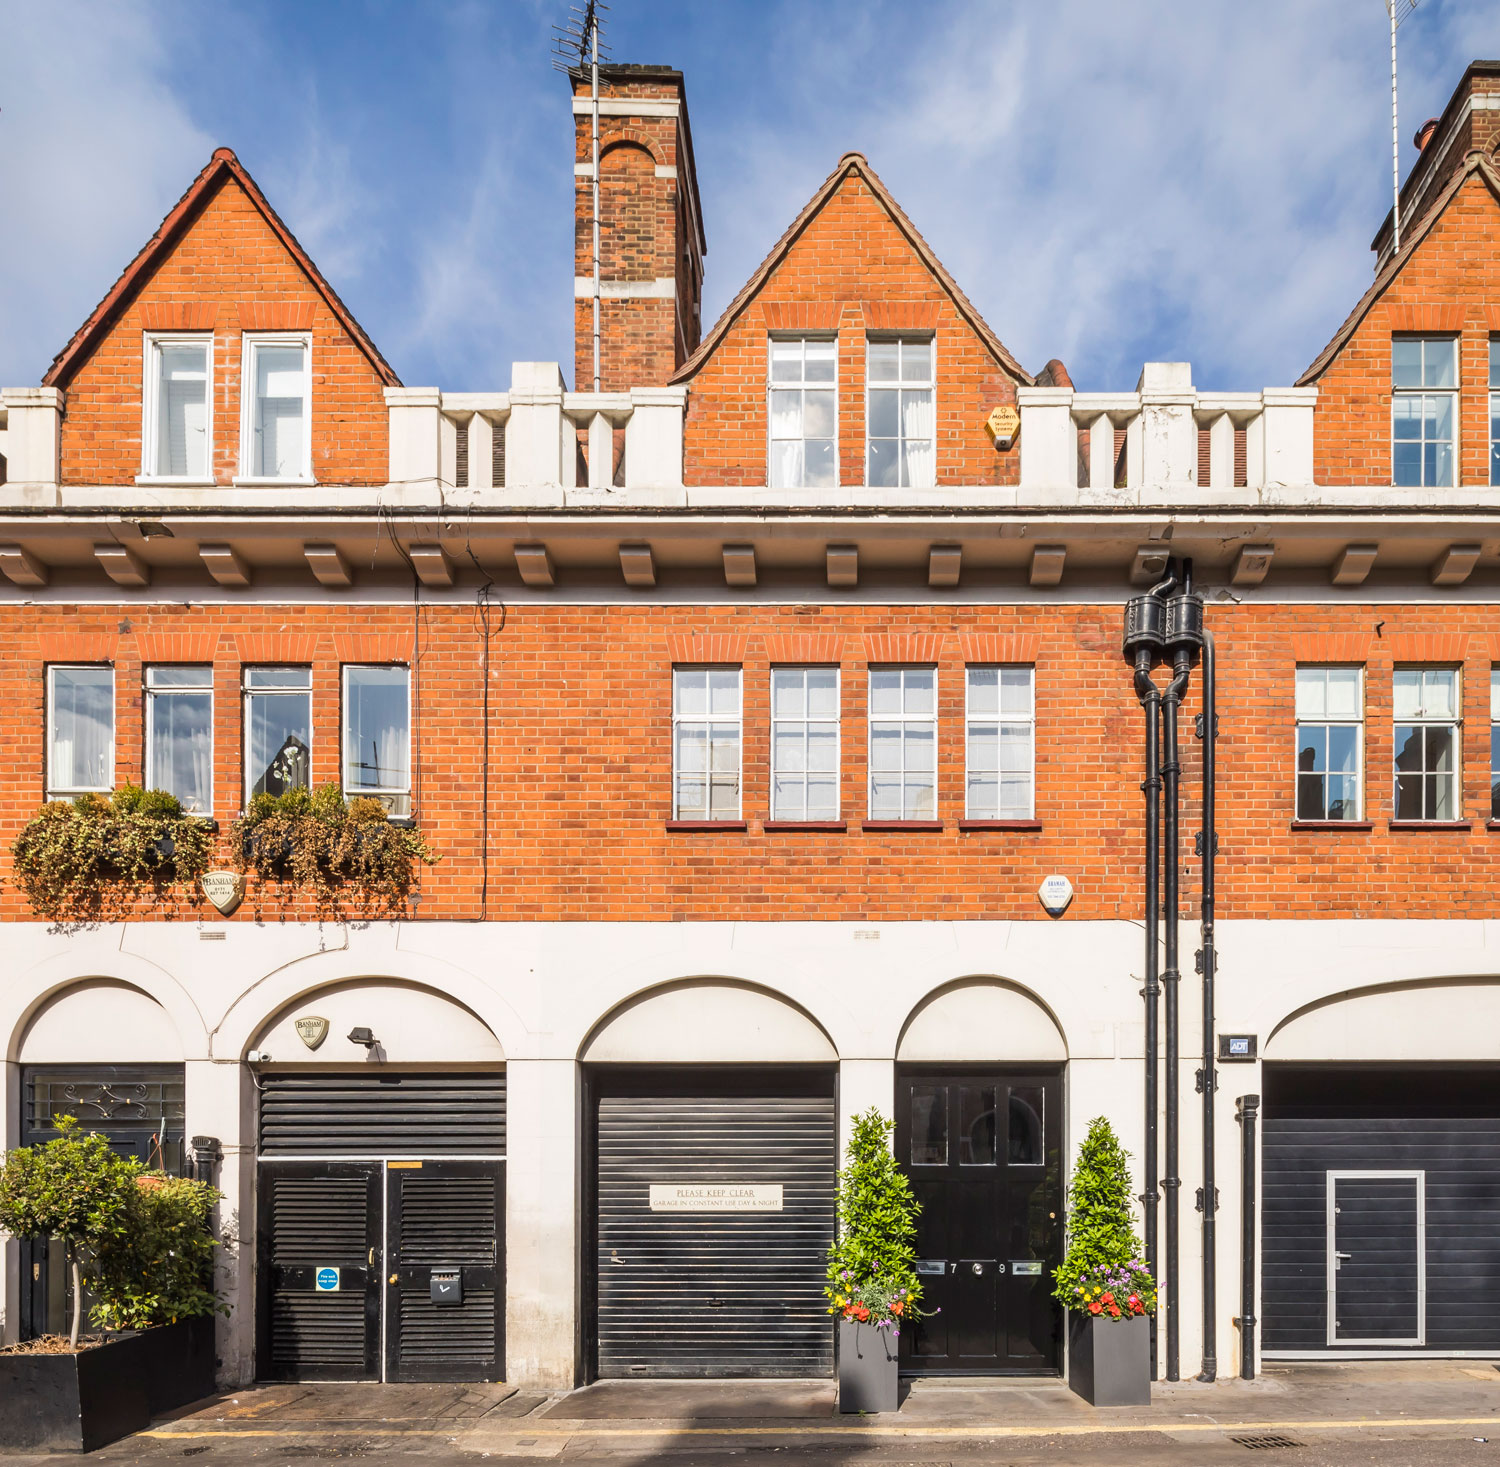 Former 19th-Century Stables Now Mayfair Home For £3.95 Million